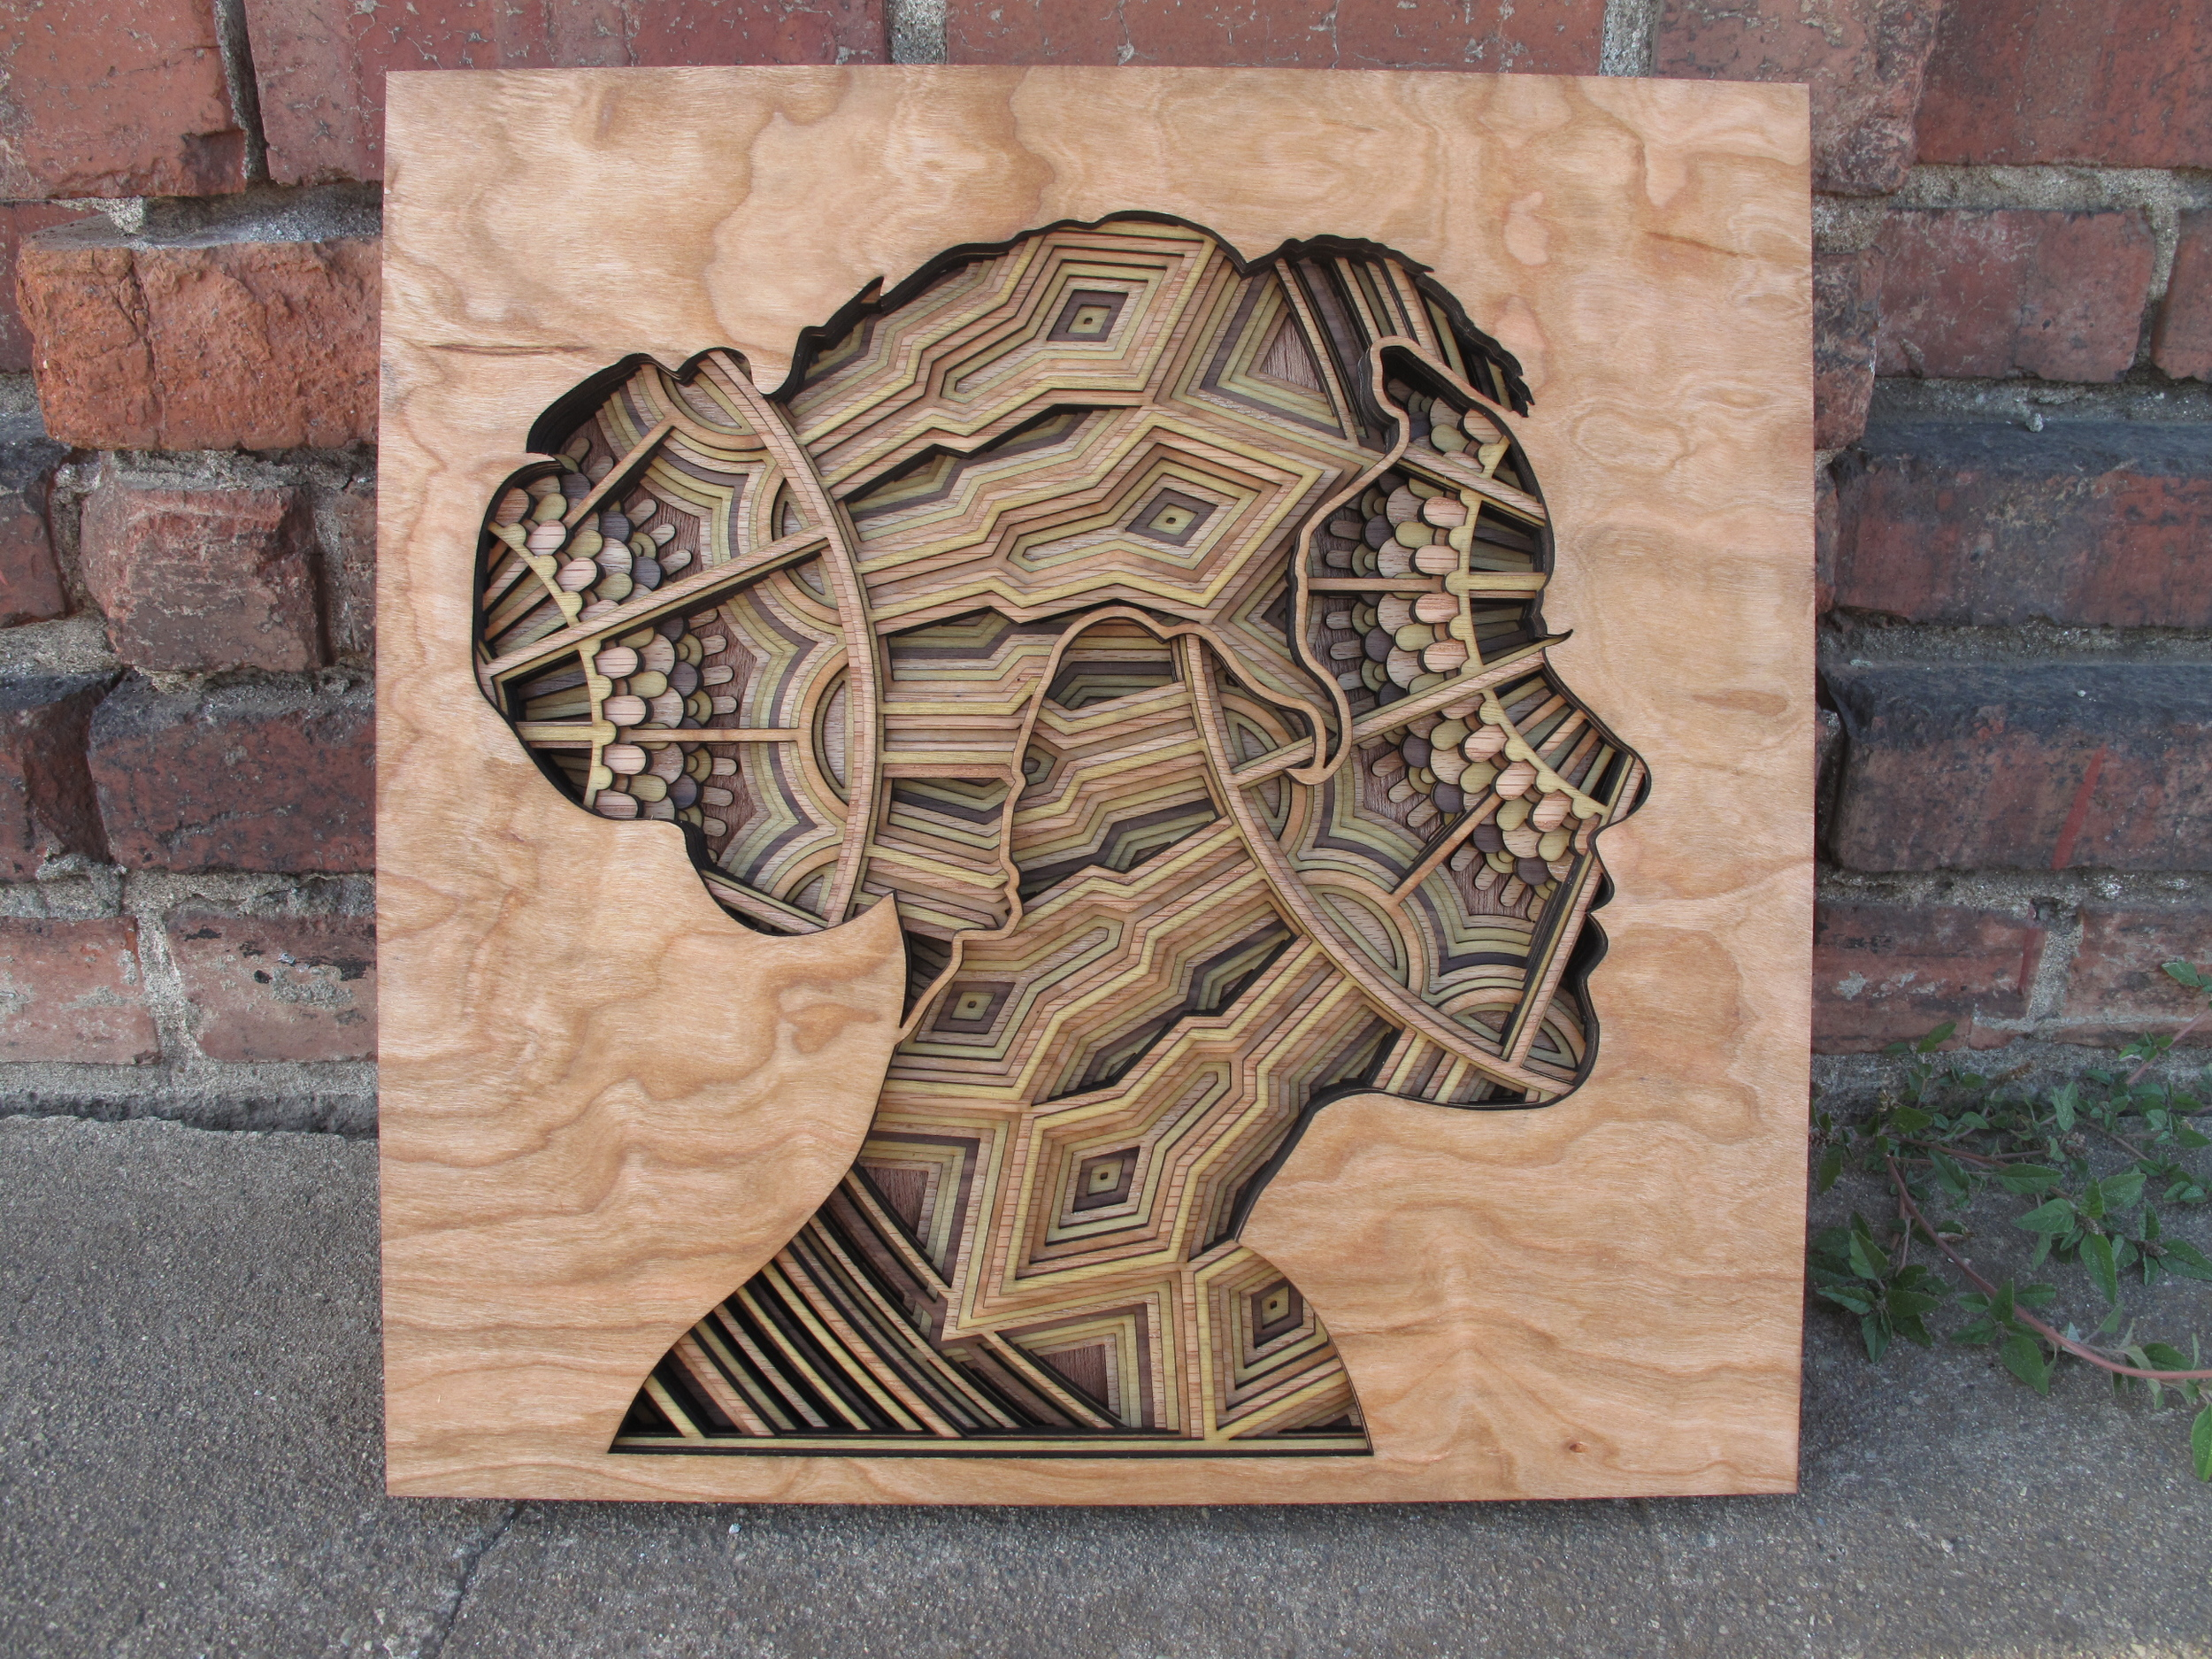 Image of Laser Cut Wood Sculptures by Gabriel Schama